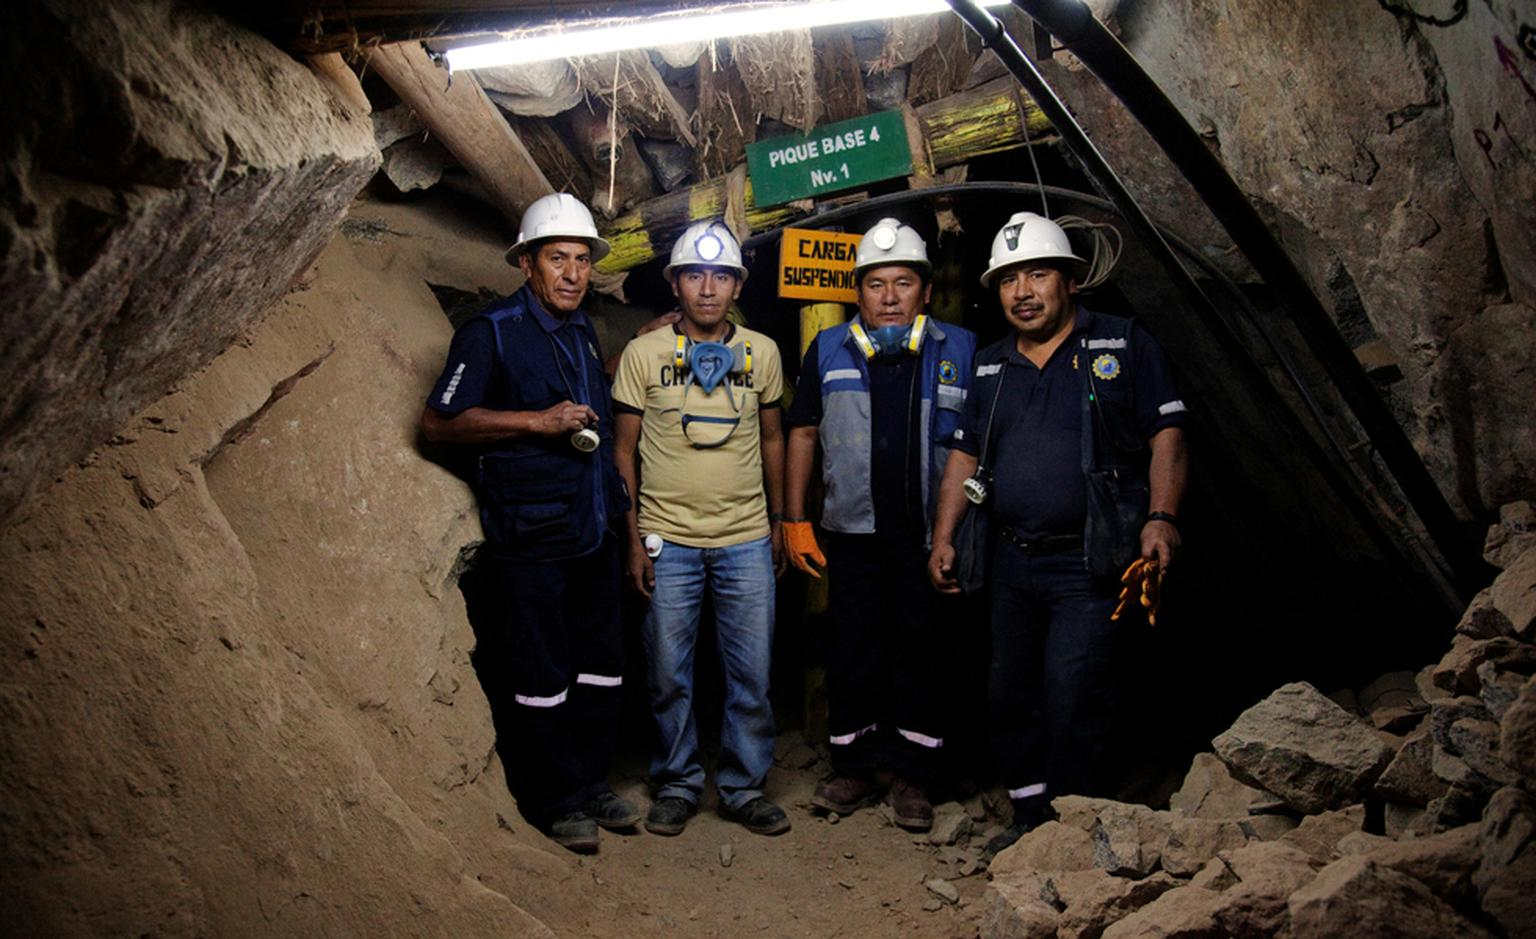 Workers inside the SOTRAMI gold mine in Santa Filomena, in Peru. SOTRAMI is one of the cooperatives working with Fairtrade ensuring a fair deal for small scale gold miners